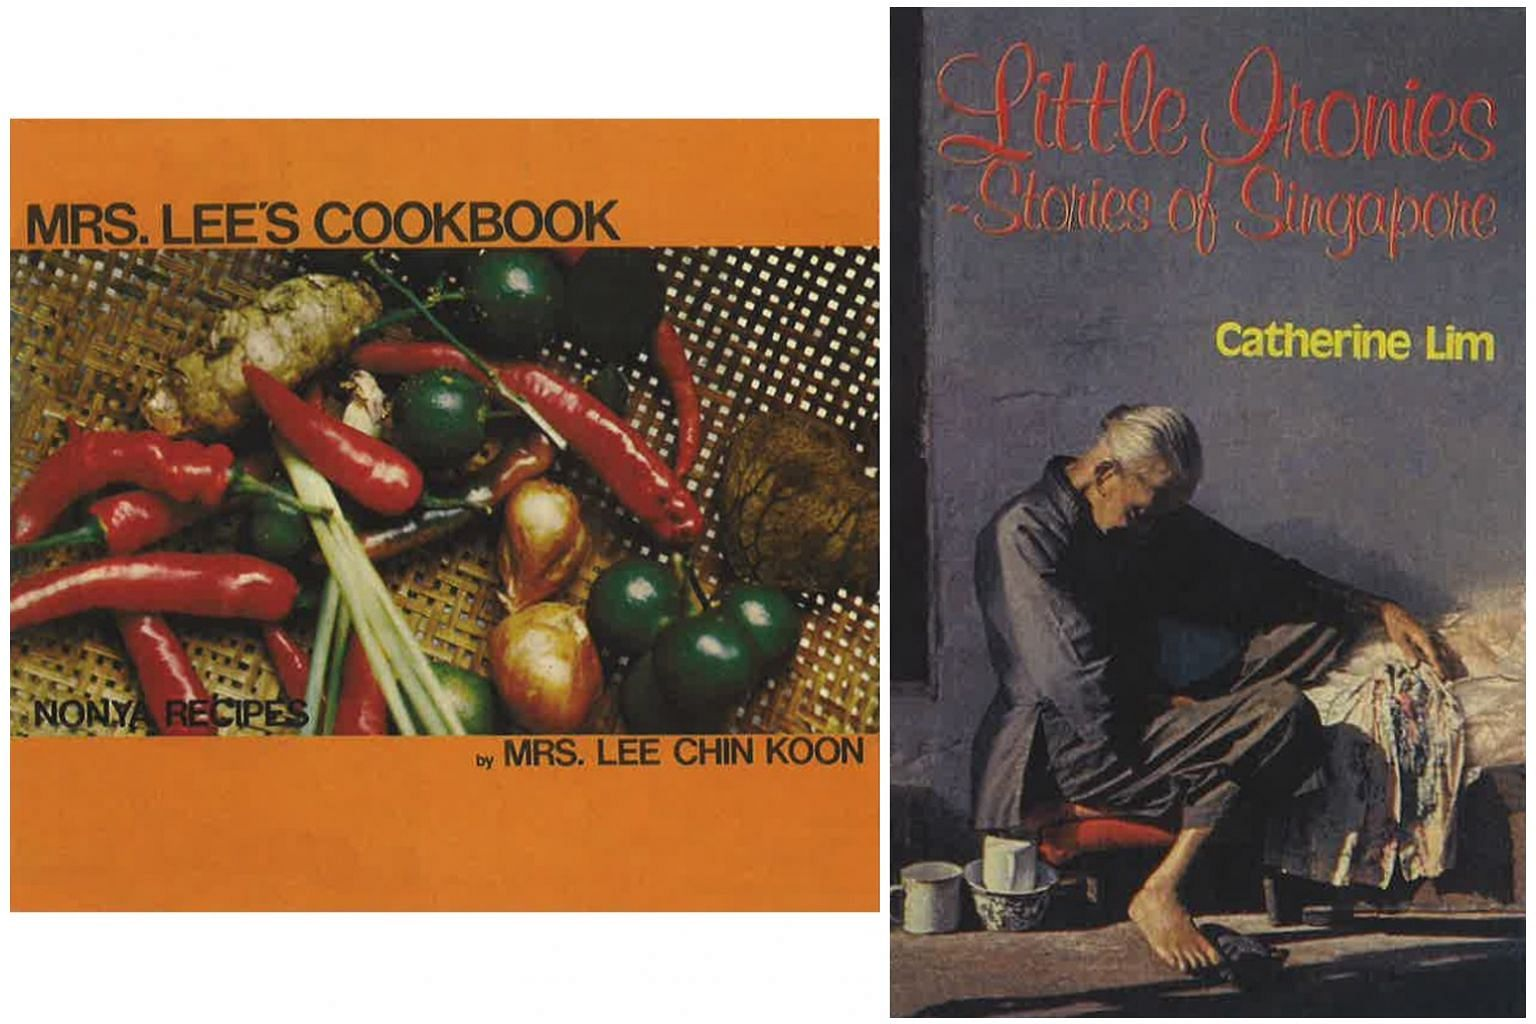 Mrs. Lee's Cookbook (1974) By Mrs Lee Chin Koon (left) and Little Ironies: Stories Of Singapore (1978) By Catherine Lim (right)